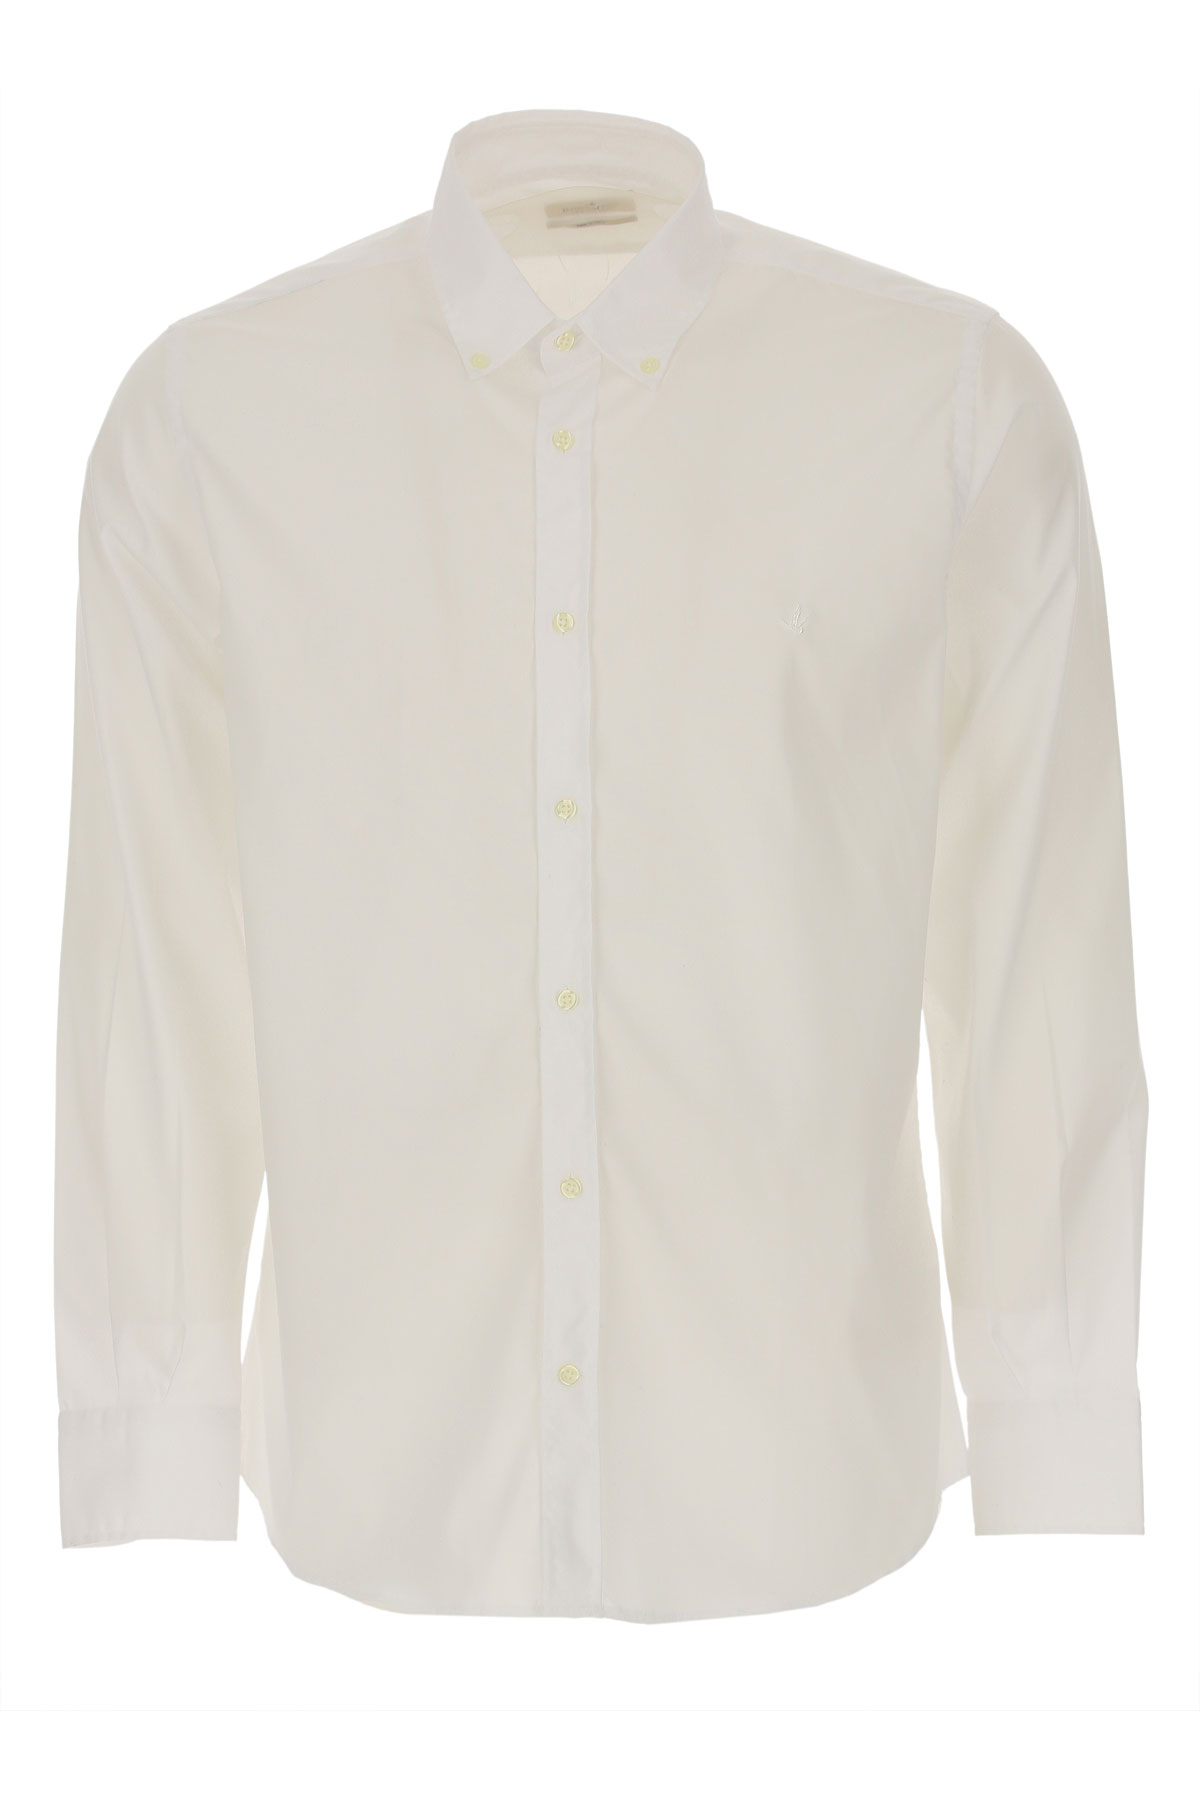 Brooksfield Shirt for Men, White, Cotton, 2019, 15.5 15.75 16 16.5 17 17.5